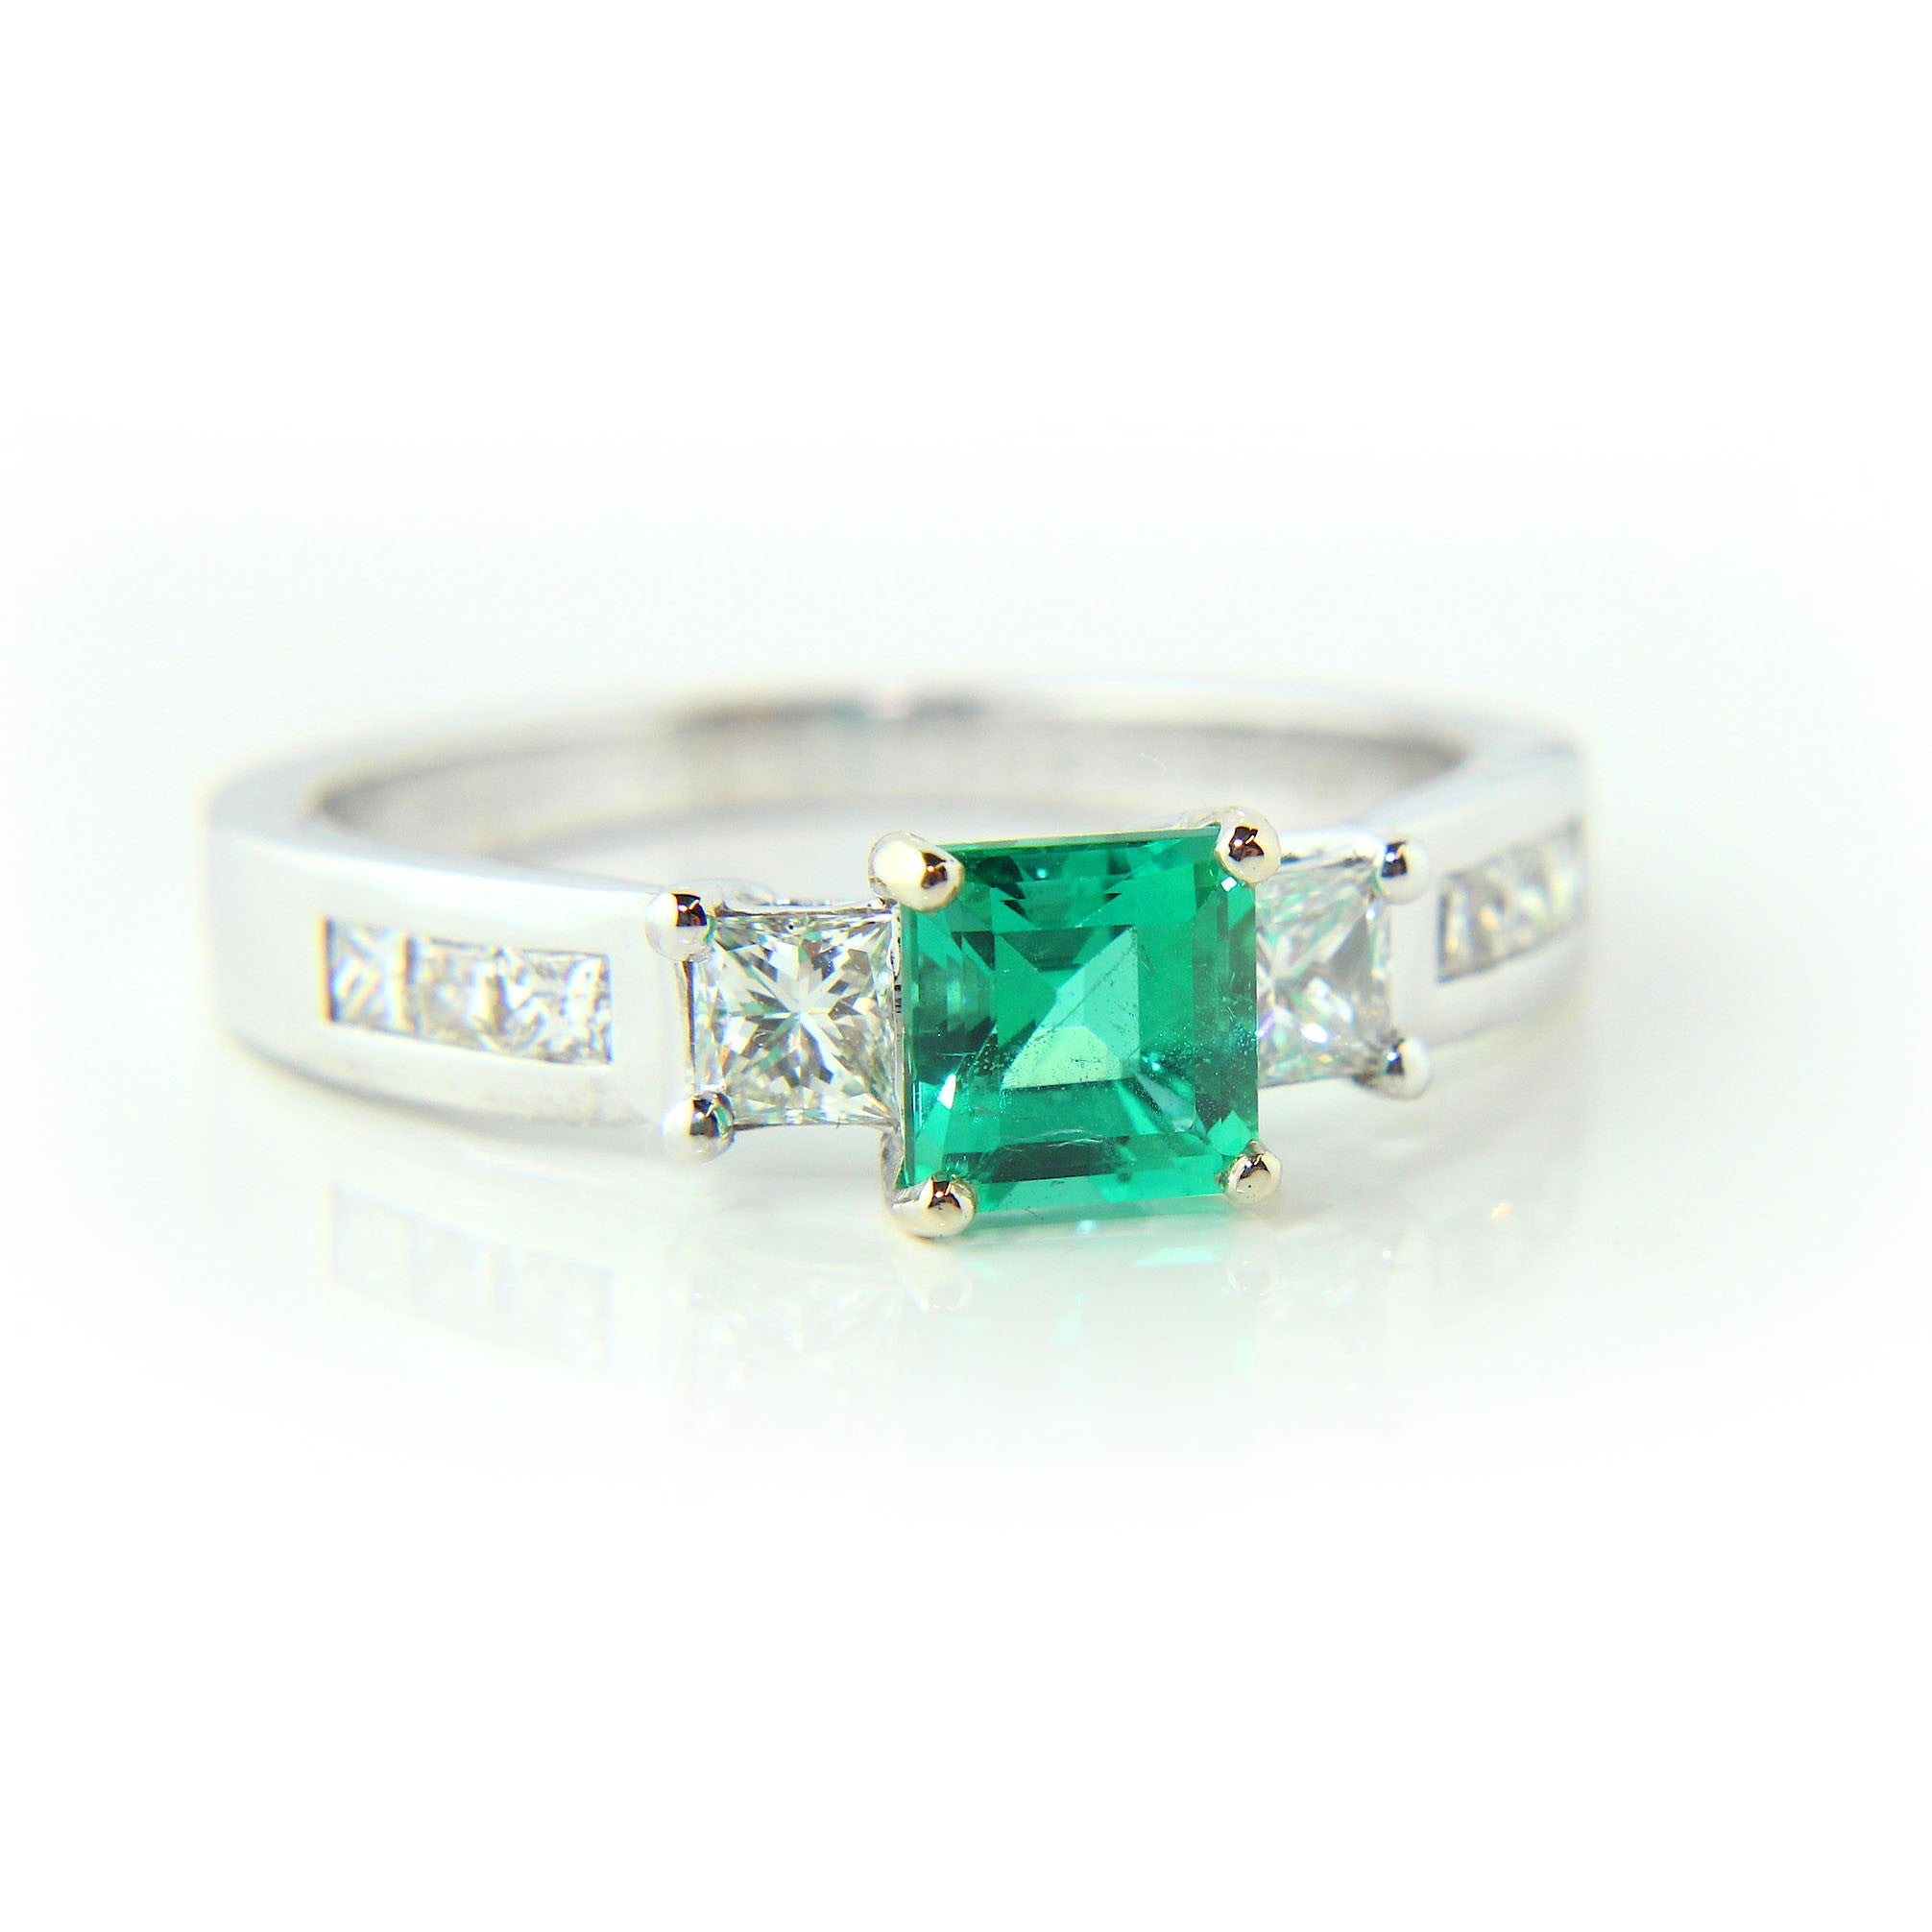 sugarloaf on gold regent jewelry cut jewelers diamond side and cabochon m karat mile white miracle emerald ring collections